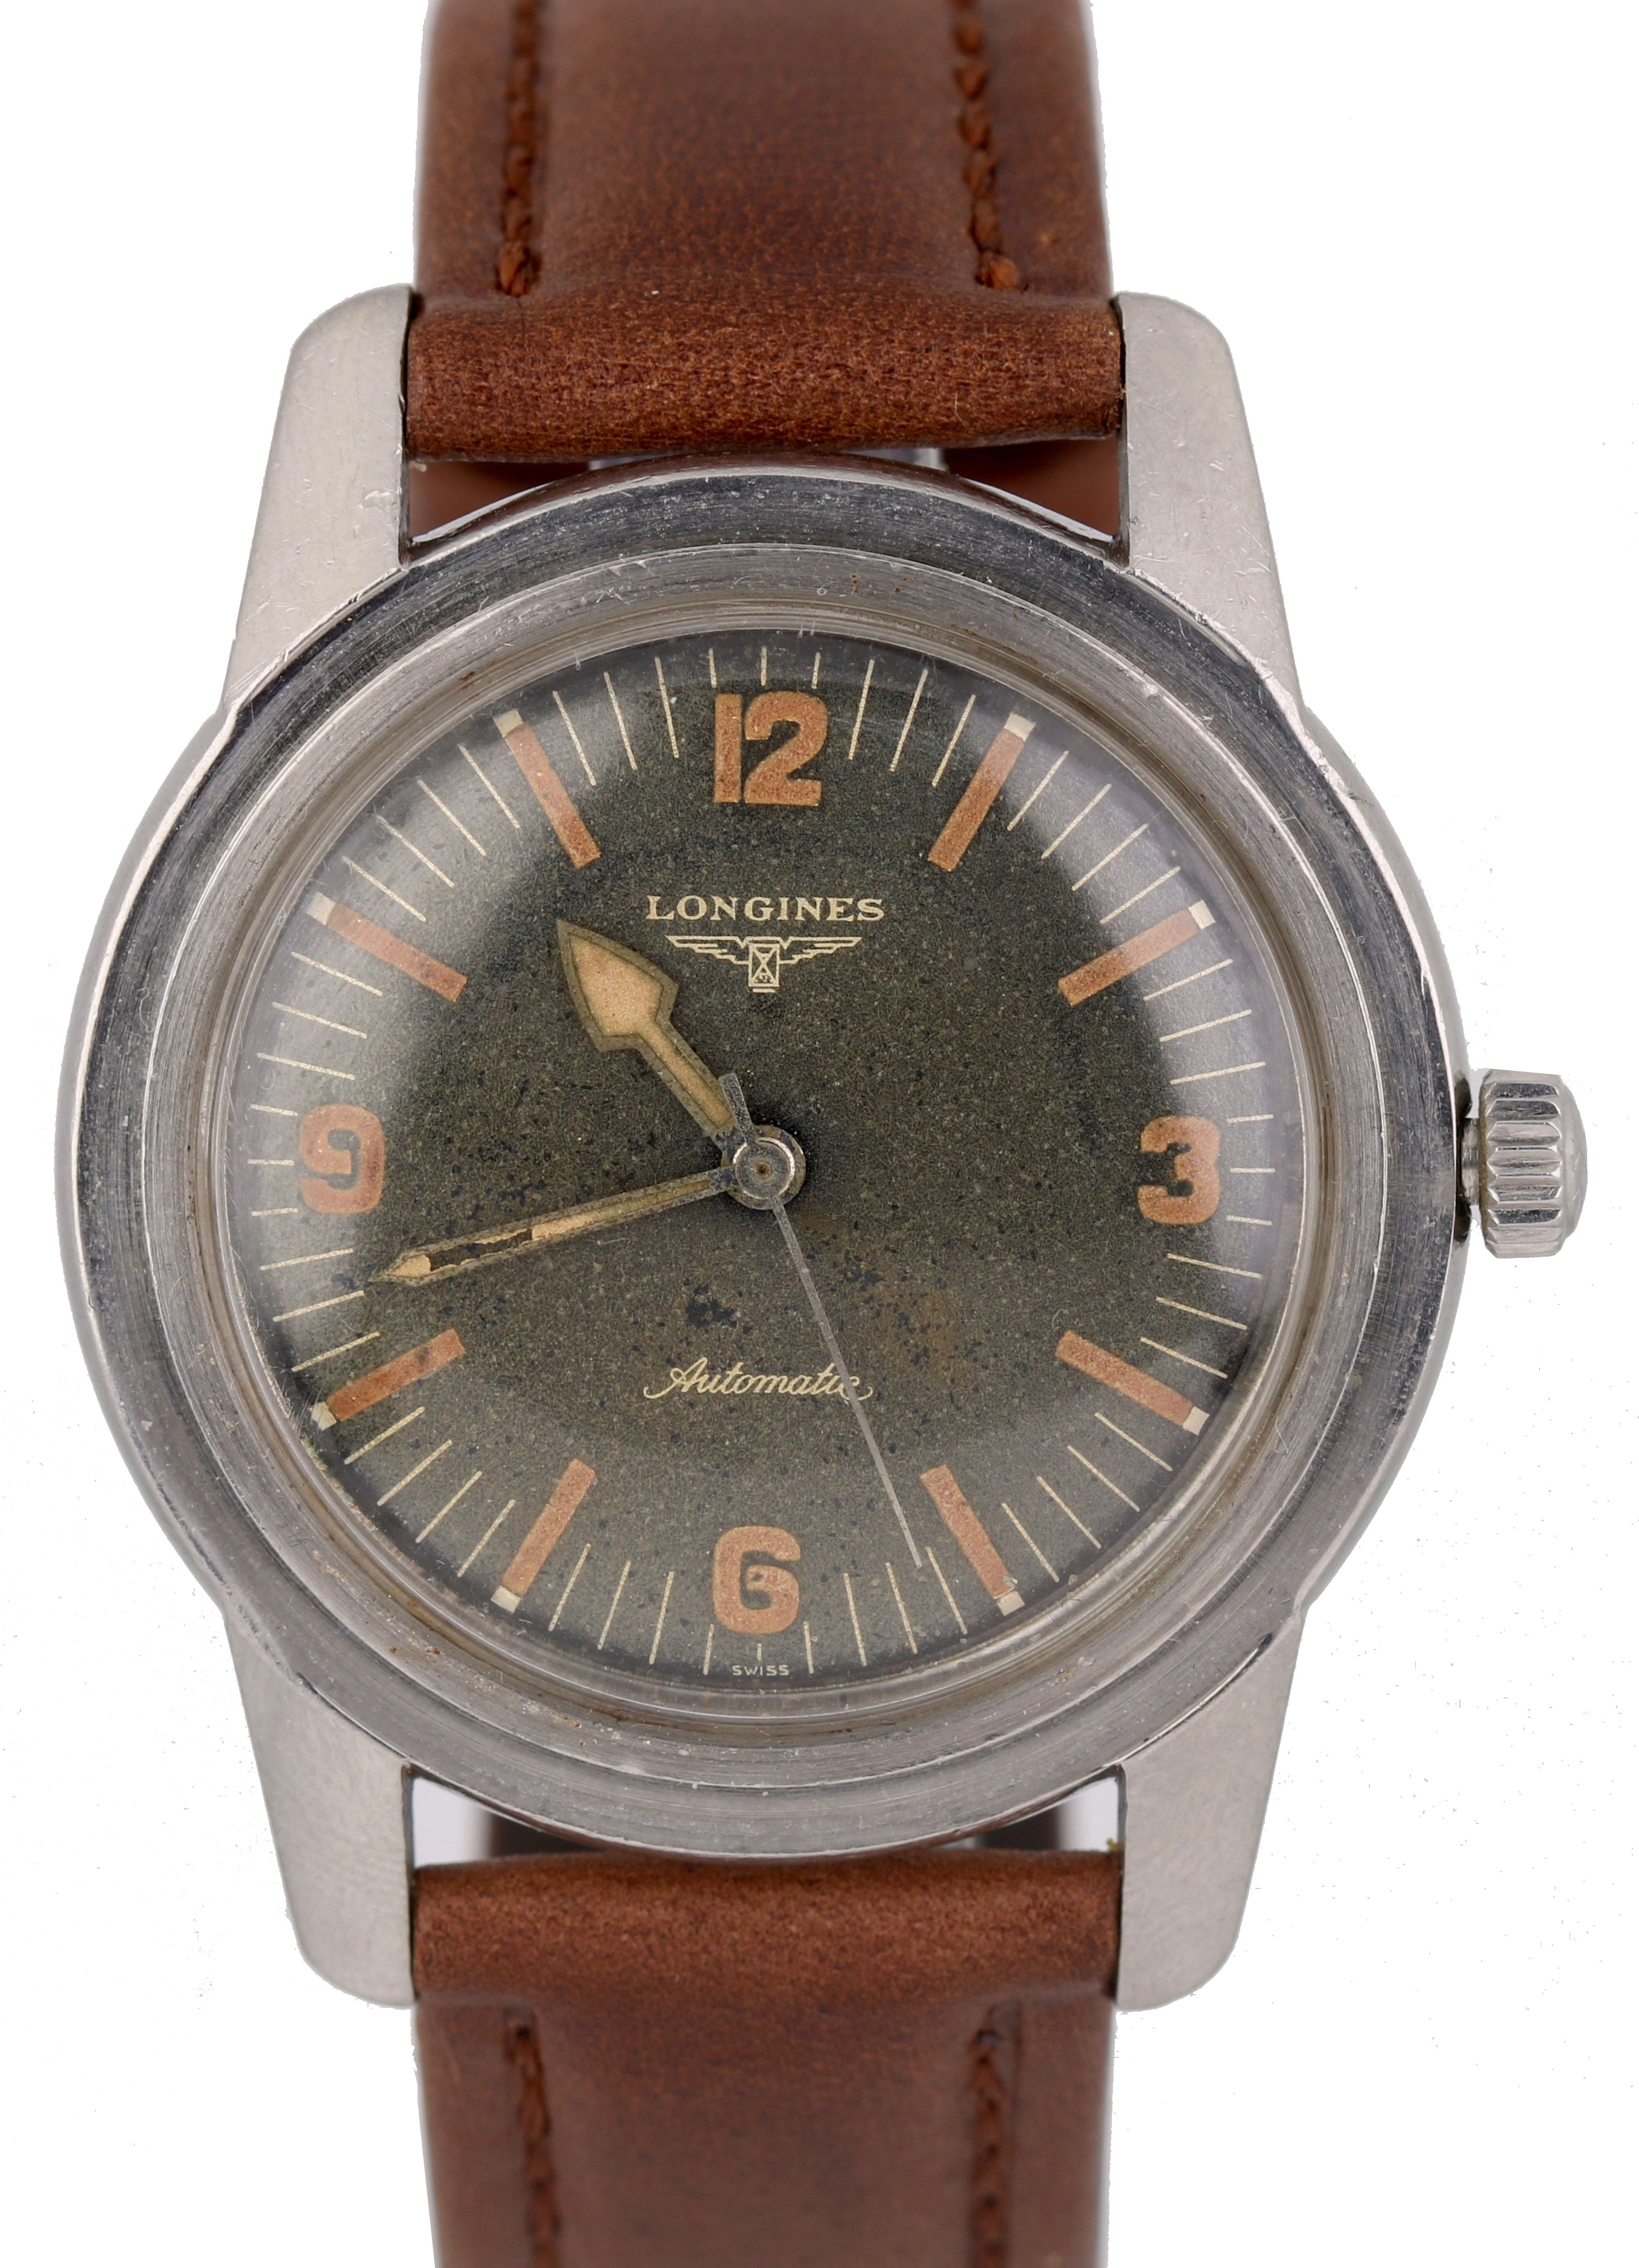 Vintage Longines Natilus Diver Ref 6921 Stainless Leather Radium 40mm Watch